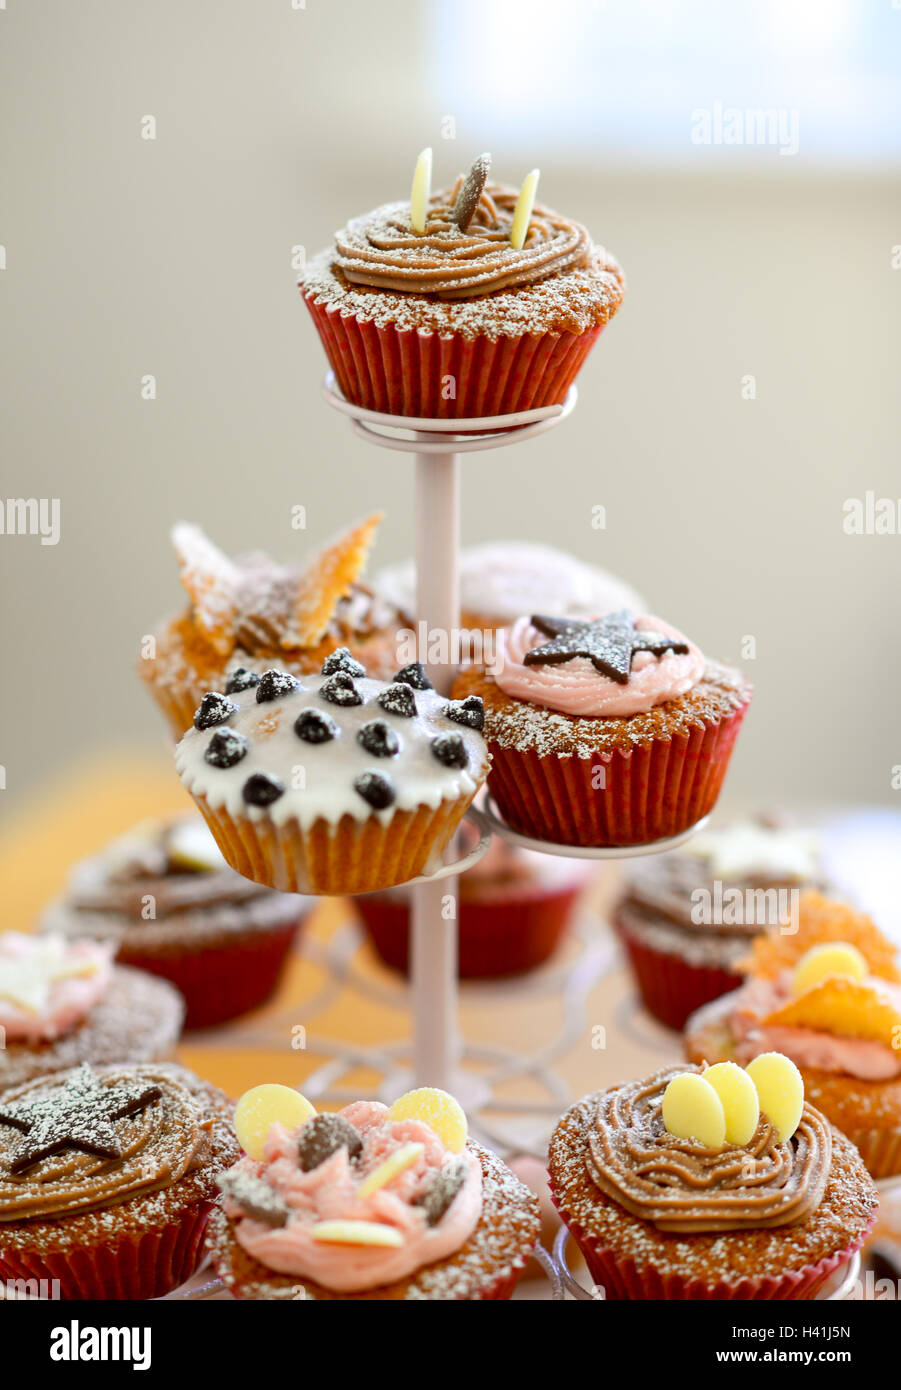 Cupcakes on a tiered stand. - Stock Image